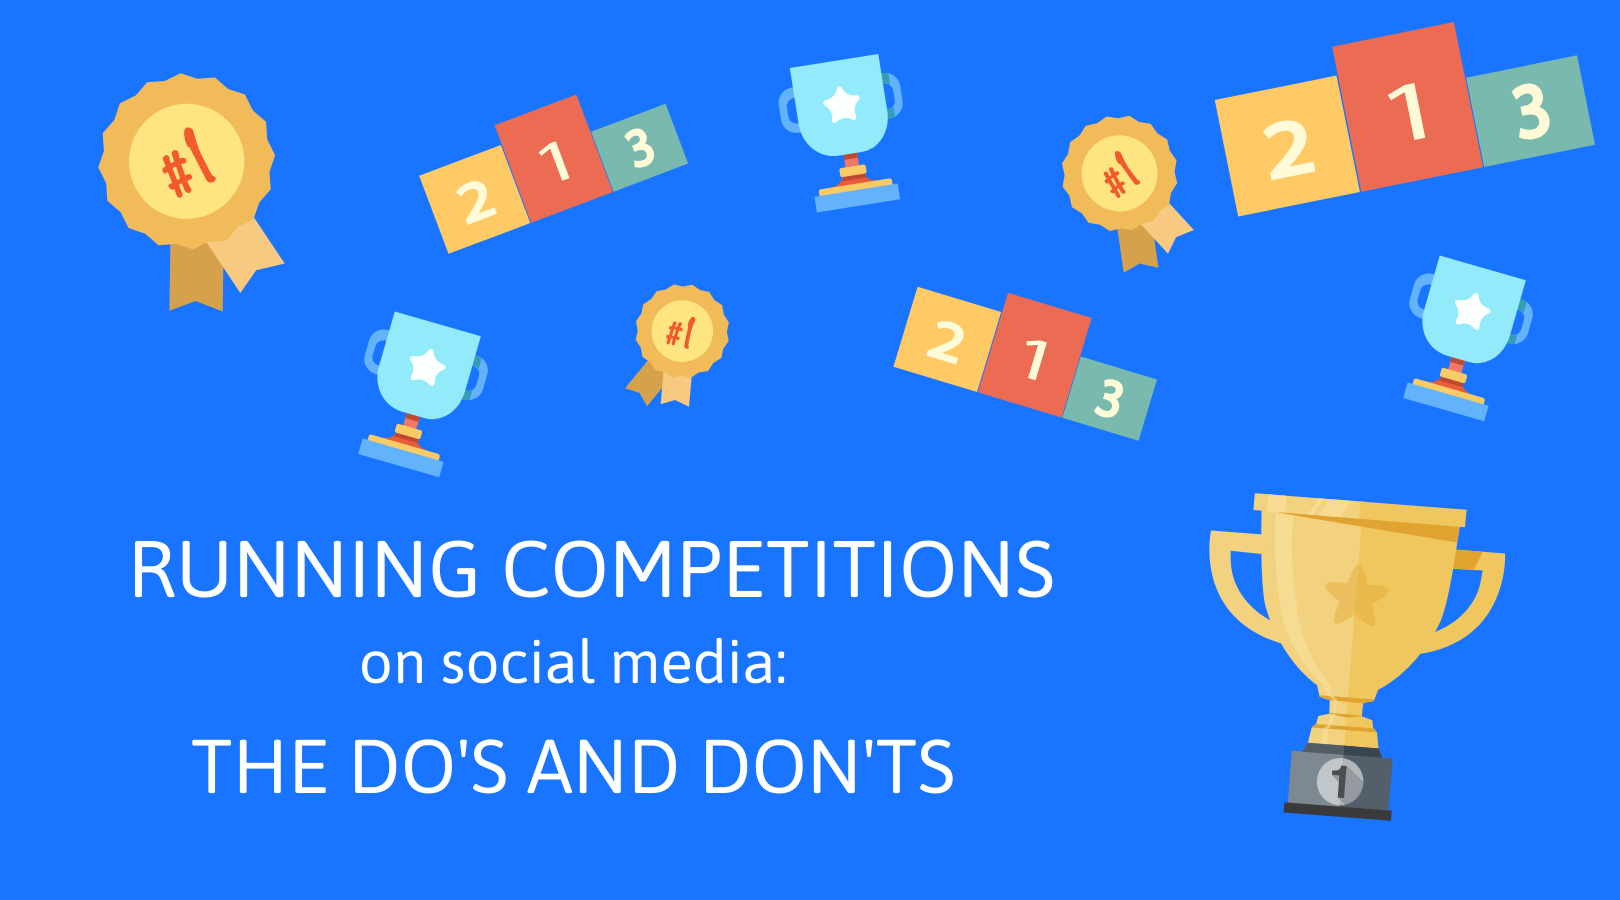 3 Running competitions on social media - the do's and don'ts.